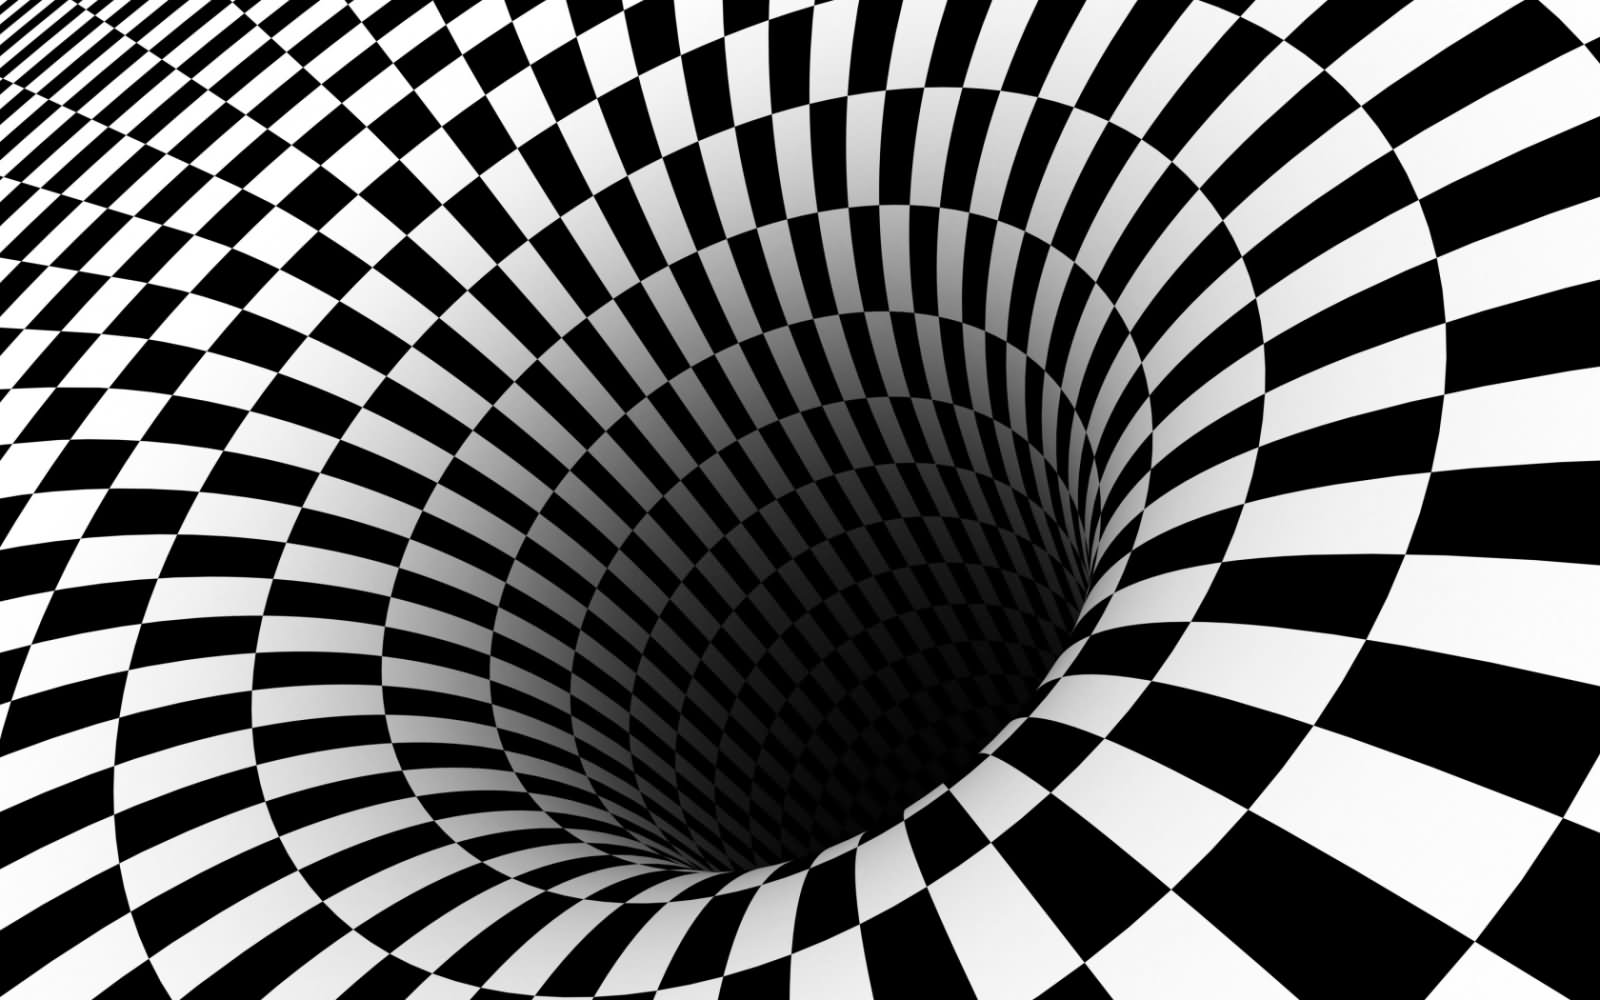 optical illusion illusions moving hole visual mind checkered 3d brain op holes blowing cool architecture kb awesome wallpapers visit spirals